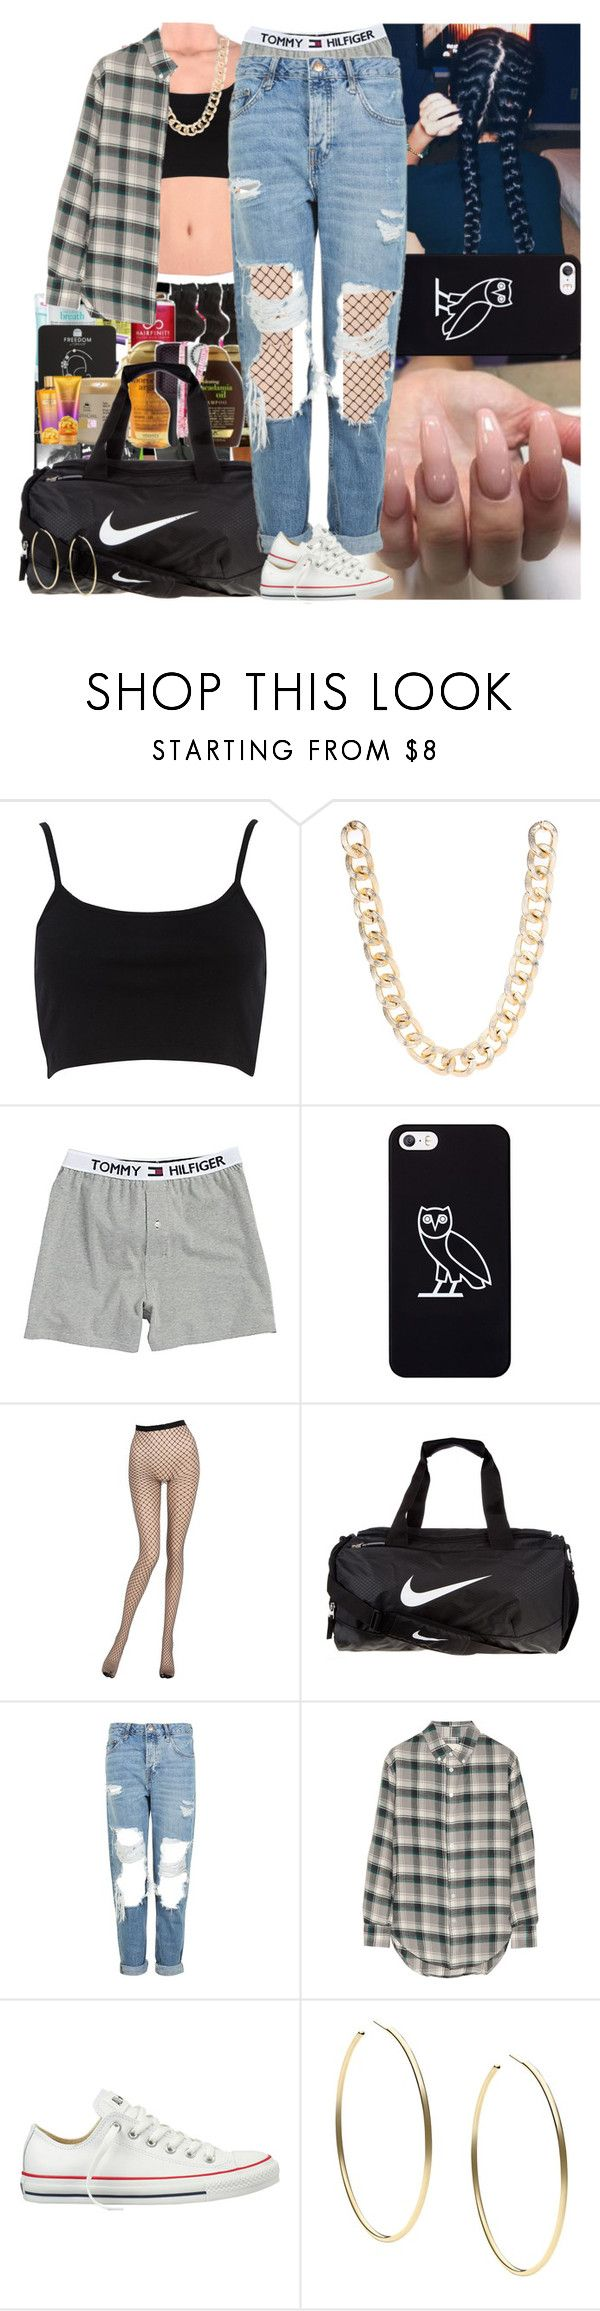 """""""Untitled #738"""" by msixo ❤ liked on Polyvore featuring River Island, Jane Norman, October's Very Own, La Perla, NIKE, Topshop, Band of Outsiders, Converse and Michael Kors"""